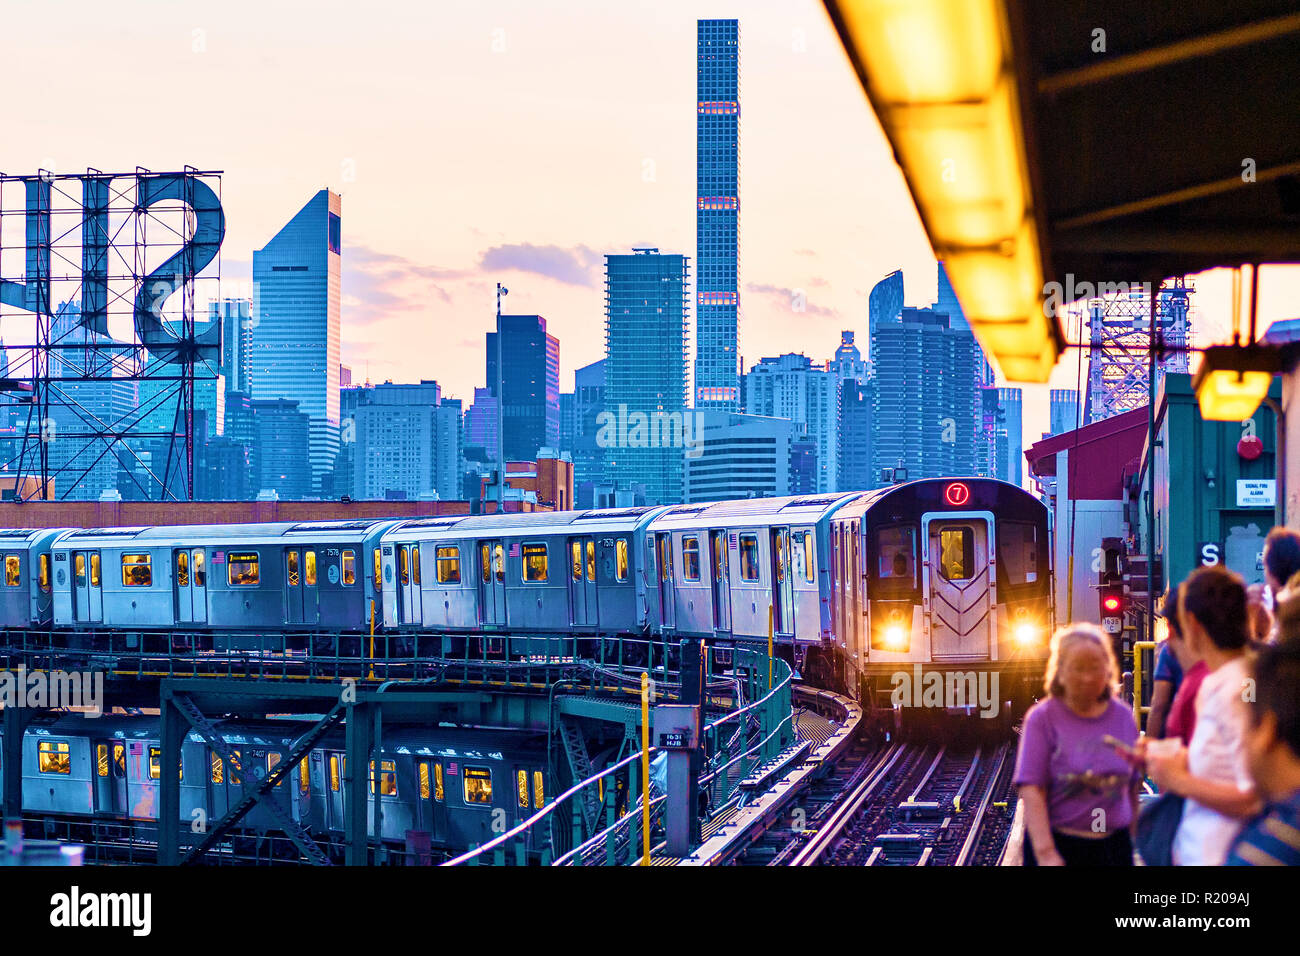 No. 7 Subway Train Long Island City, Queens, Queensboro Plaza, New York City - Stock Image